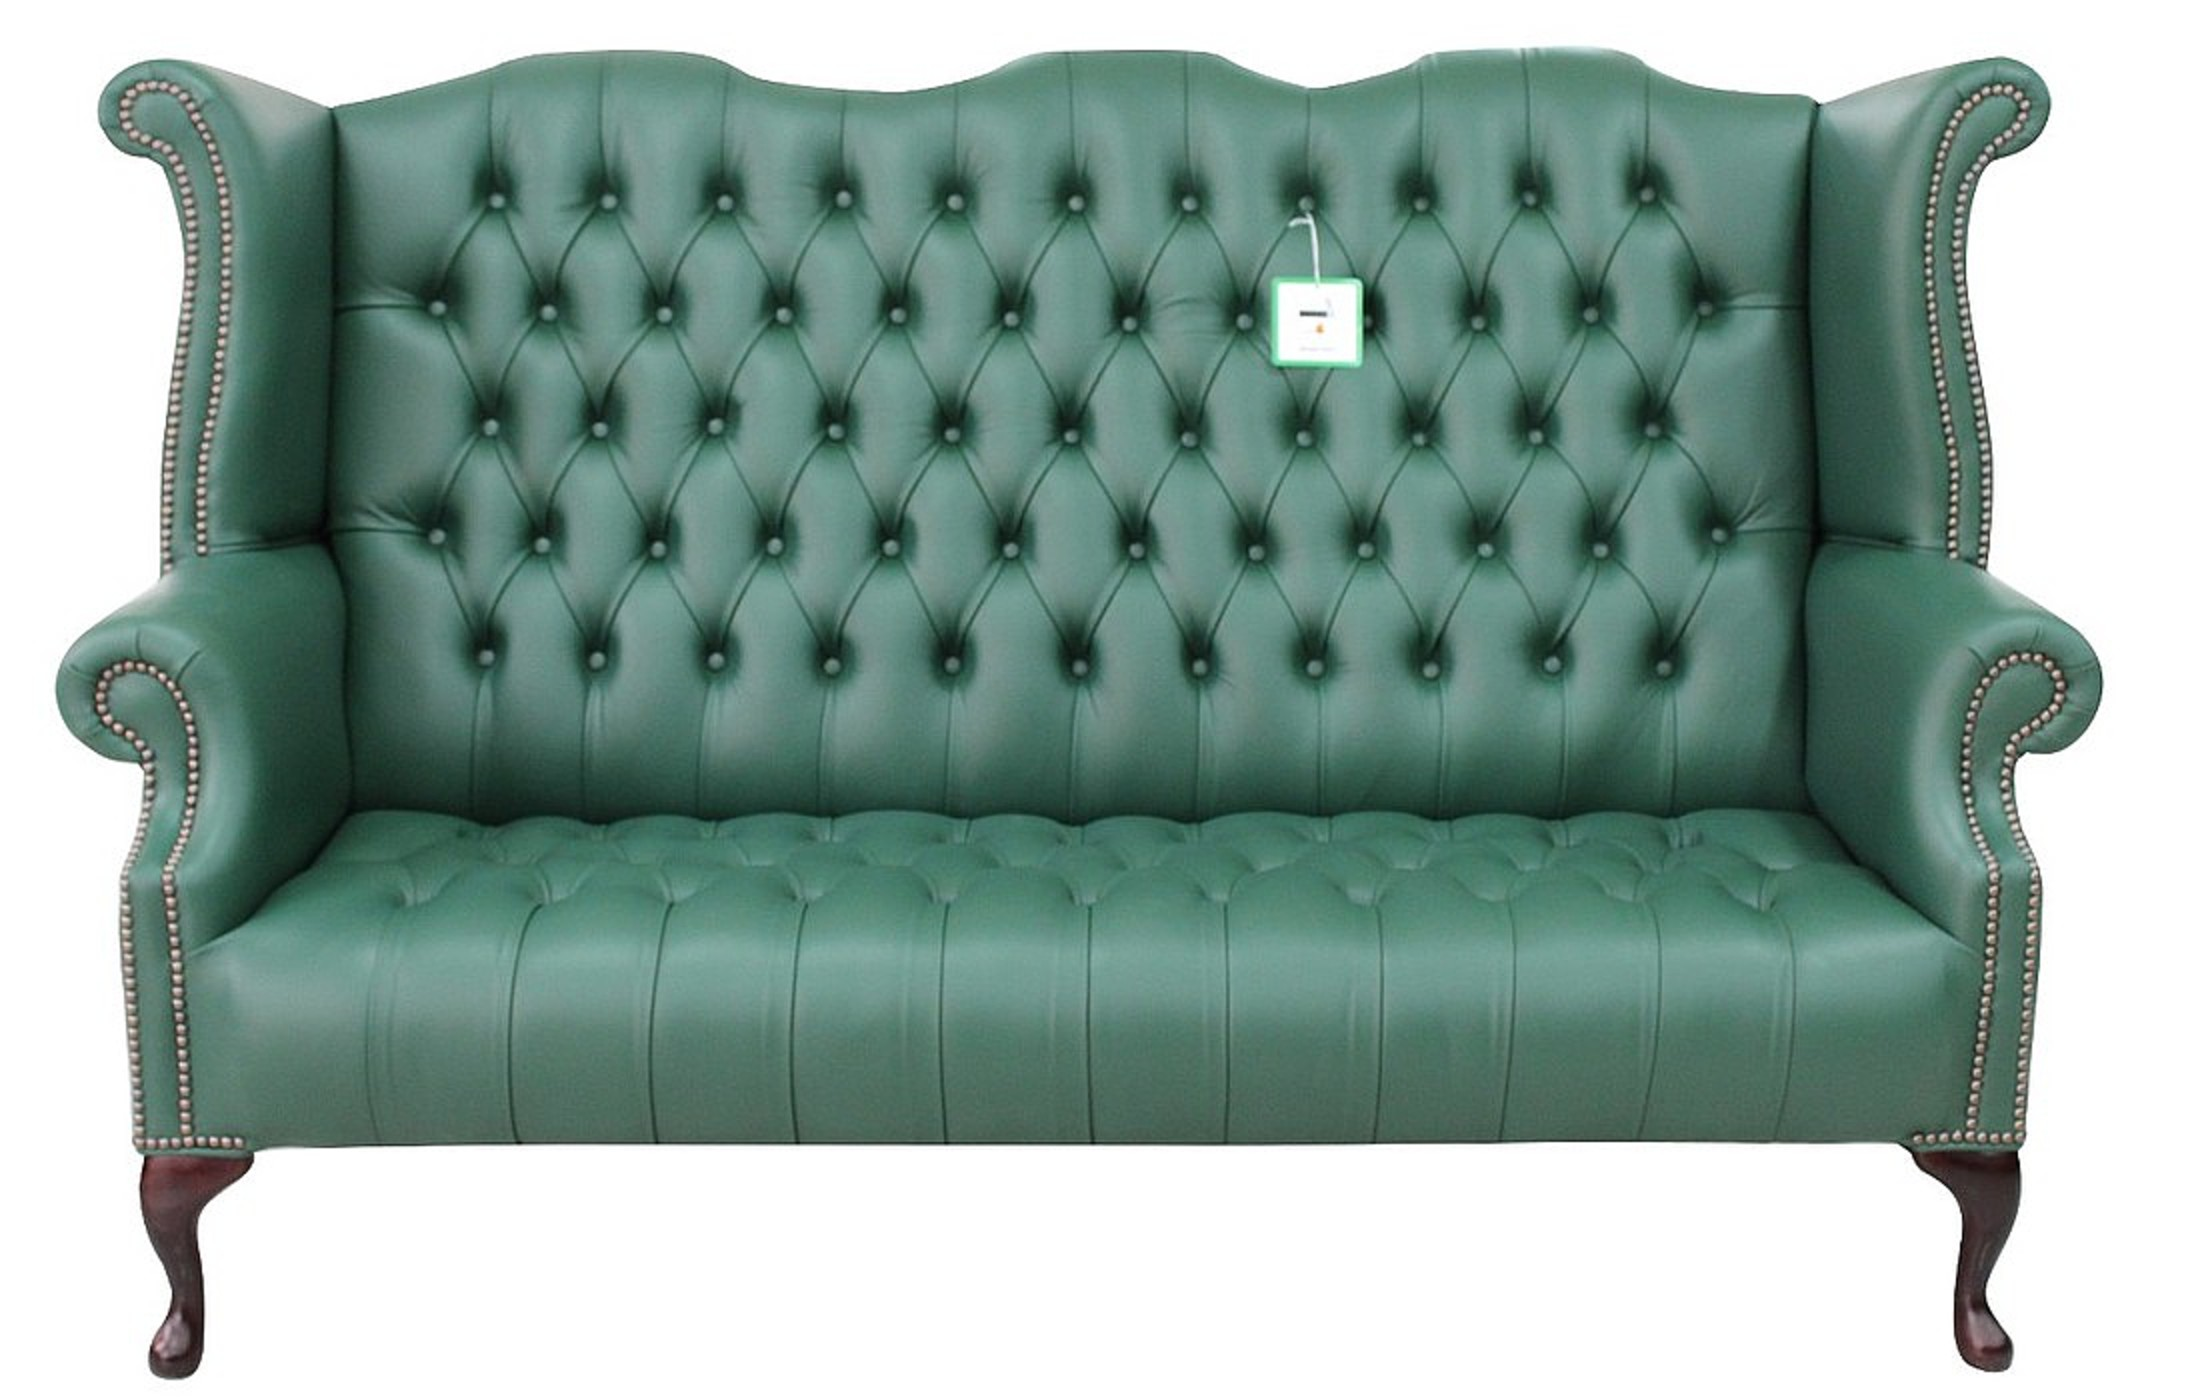 high back chesterfield sofa gus modern sleeper green 3 seater wing designersofas4u queen anne buttoned seat bottle leather